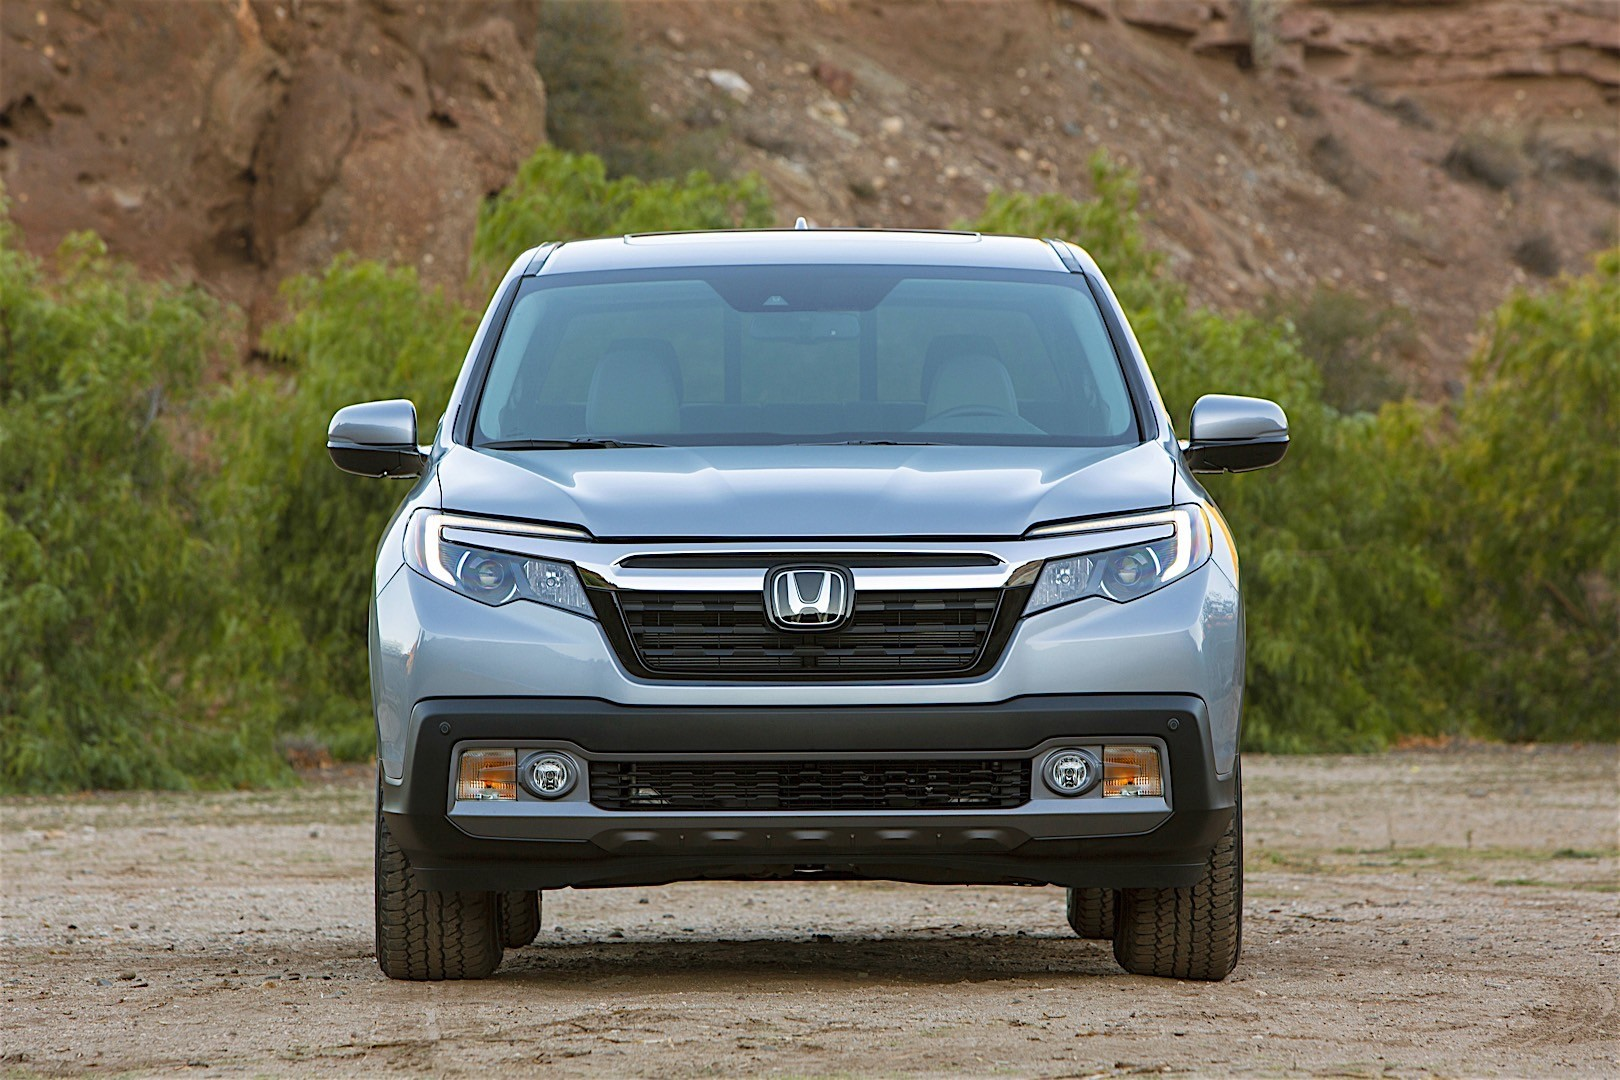 Image Result For Honda Ridgeline Remote Start